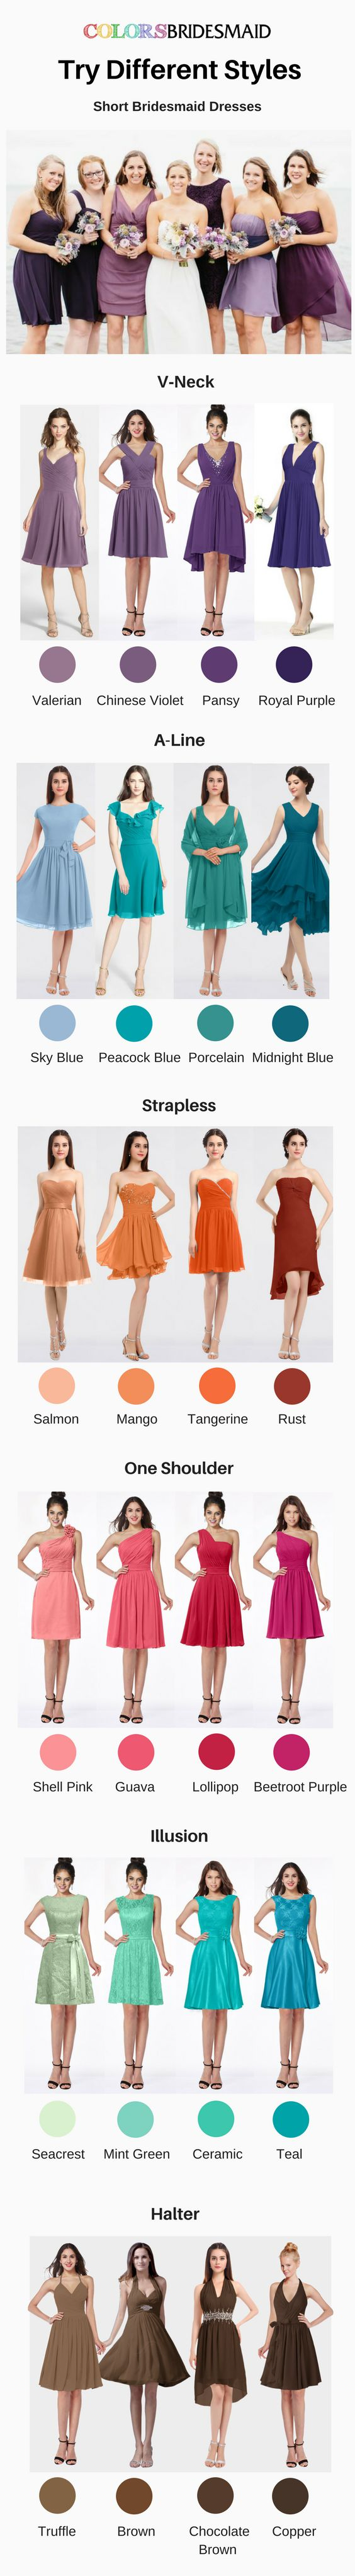 These short bridesmaid dresses with different styles including V-neckline, A-line, strapless, one-shoulder, illusion and halter styles are highly welcomed. They can be custom made to all sizes and are mostly sold under $100. Where to buy such cheap bridesmaid dresses? Colorsbridesmaid.com is your best choice.